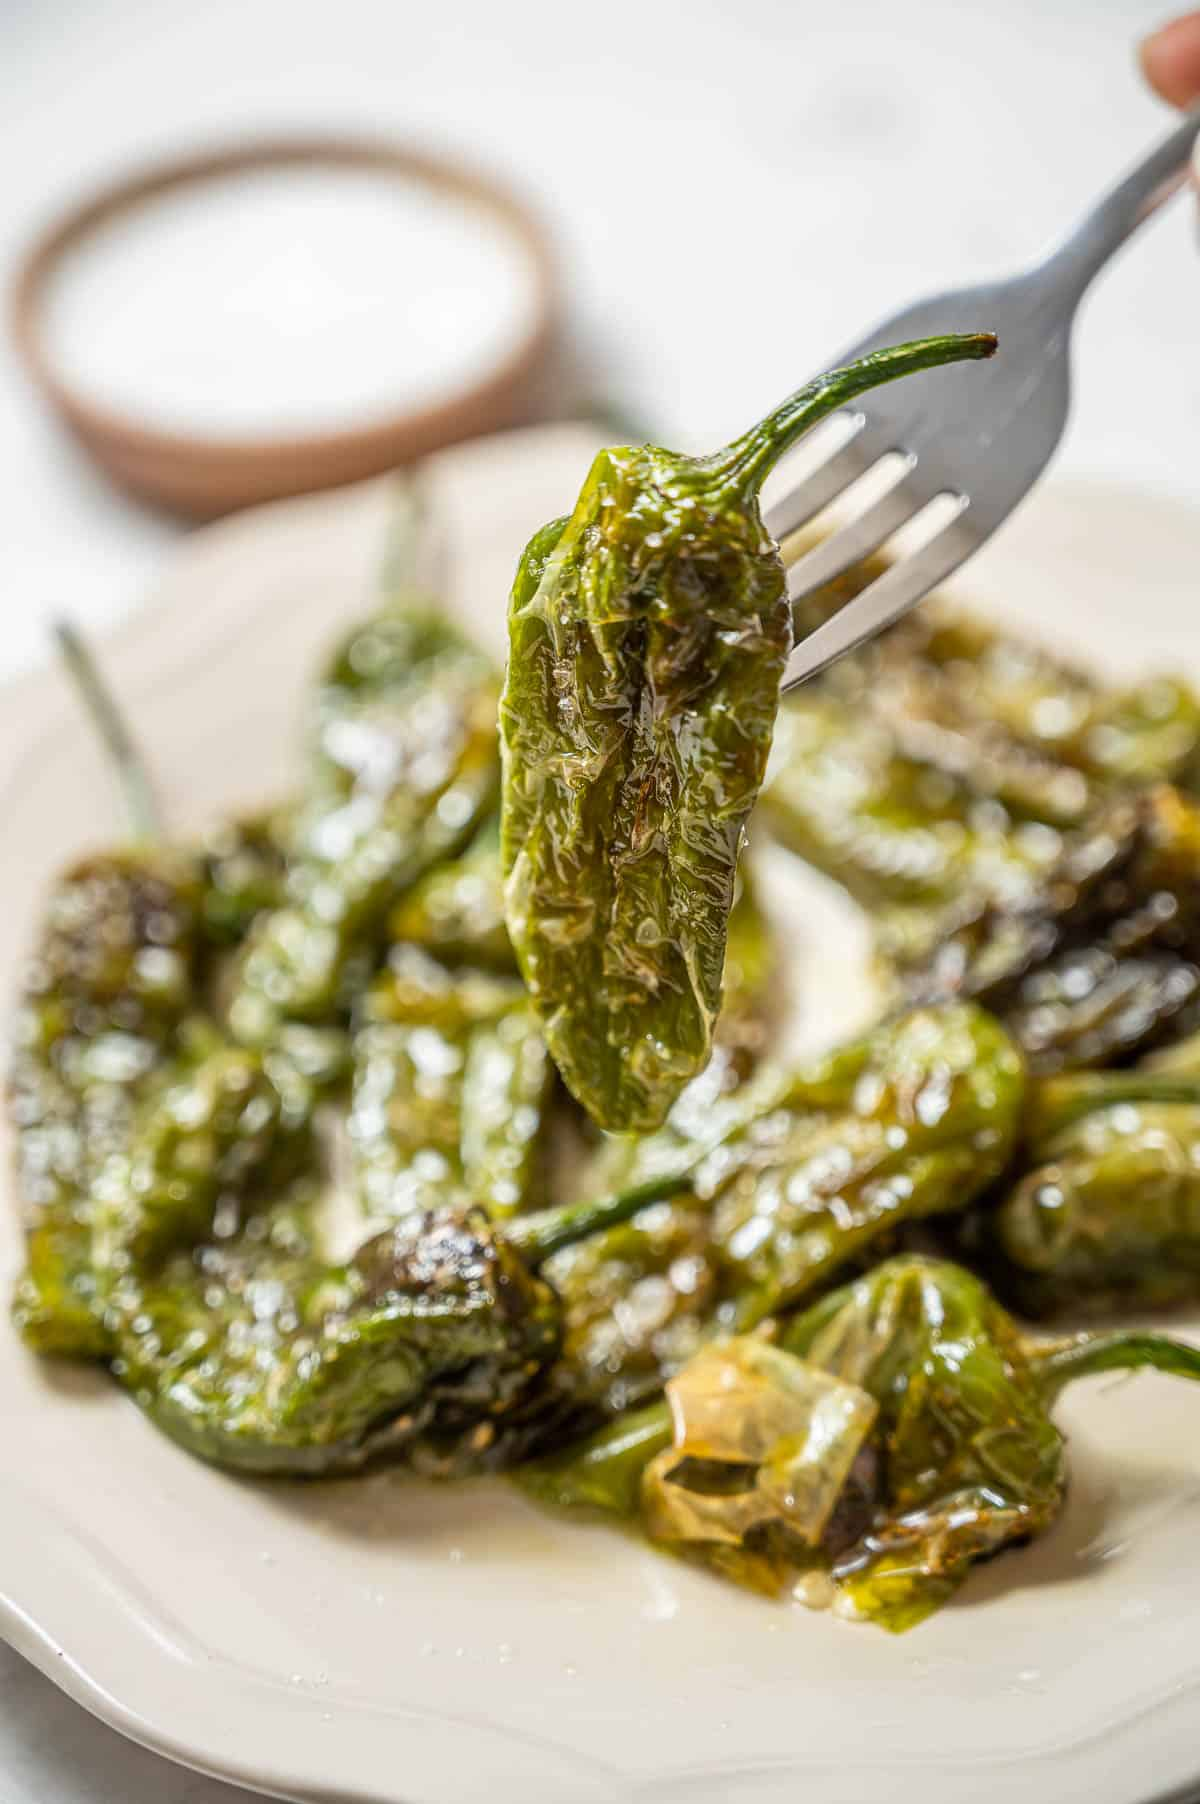 A plate of fried pimientos de padron with one pepper skewed on a fork.